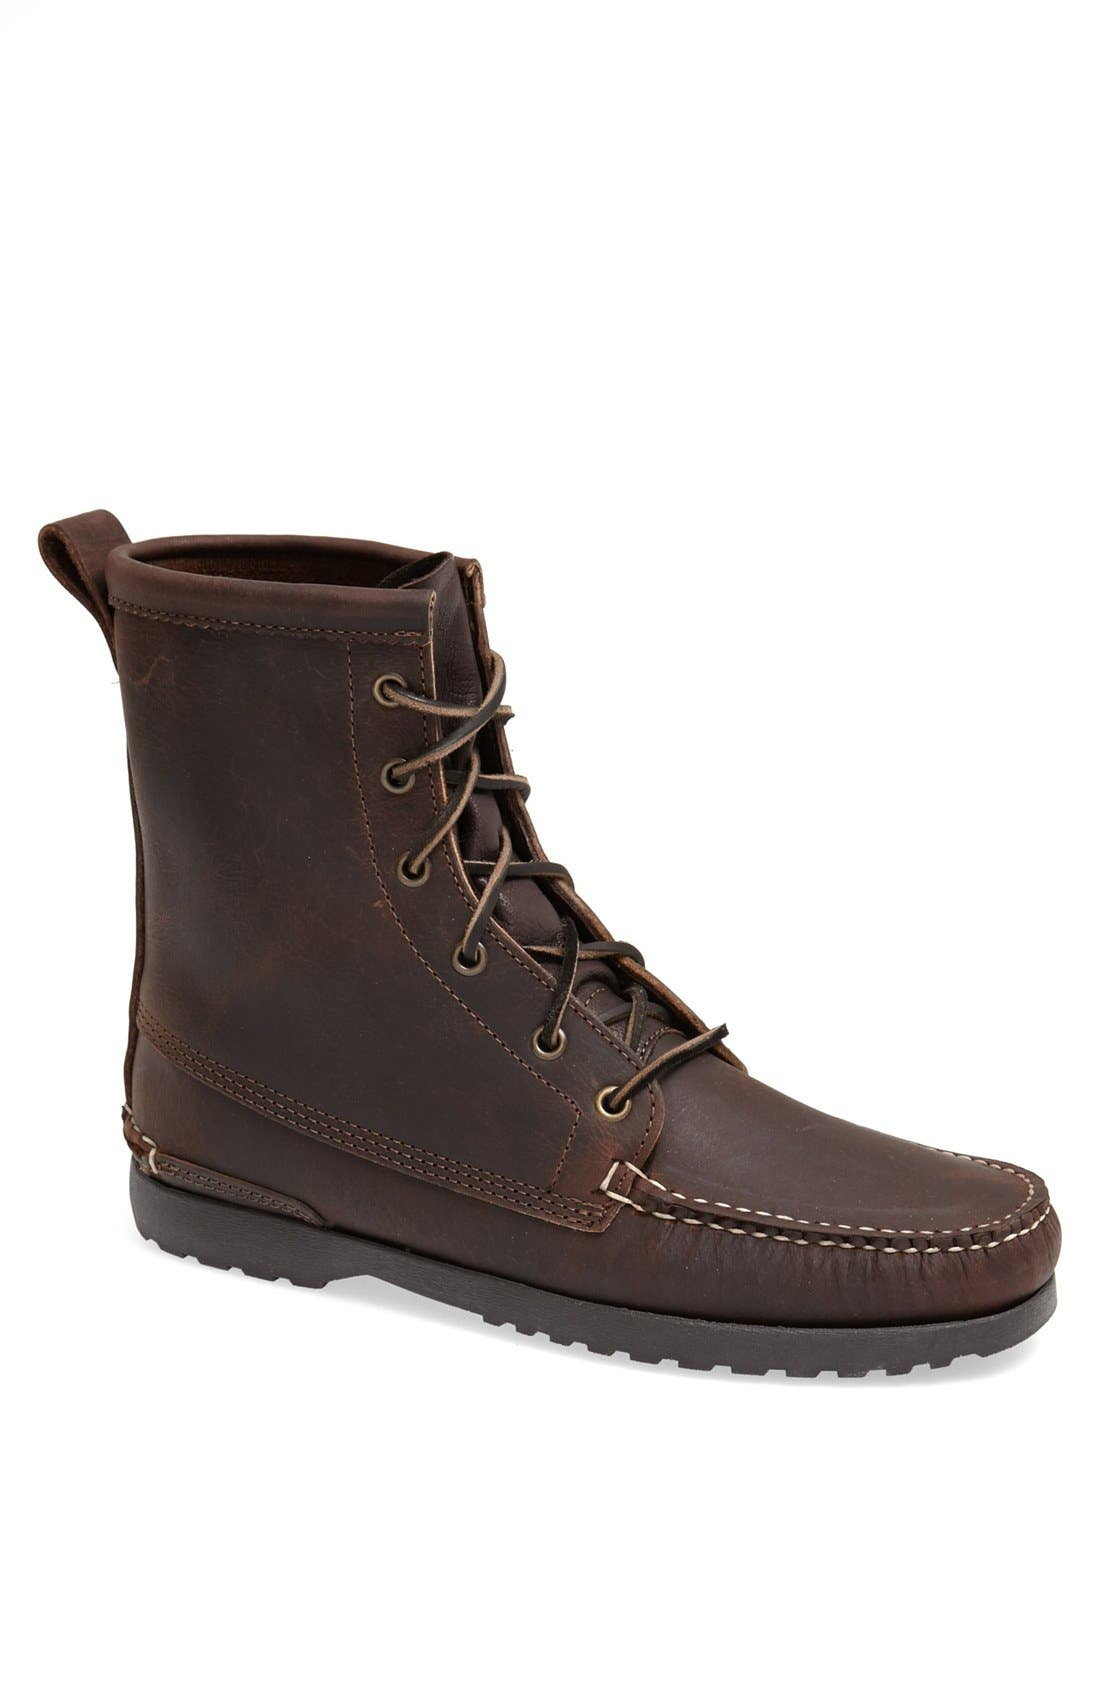 'Grizzly' Moc Toe Boot, Main, color, 202